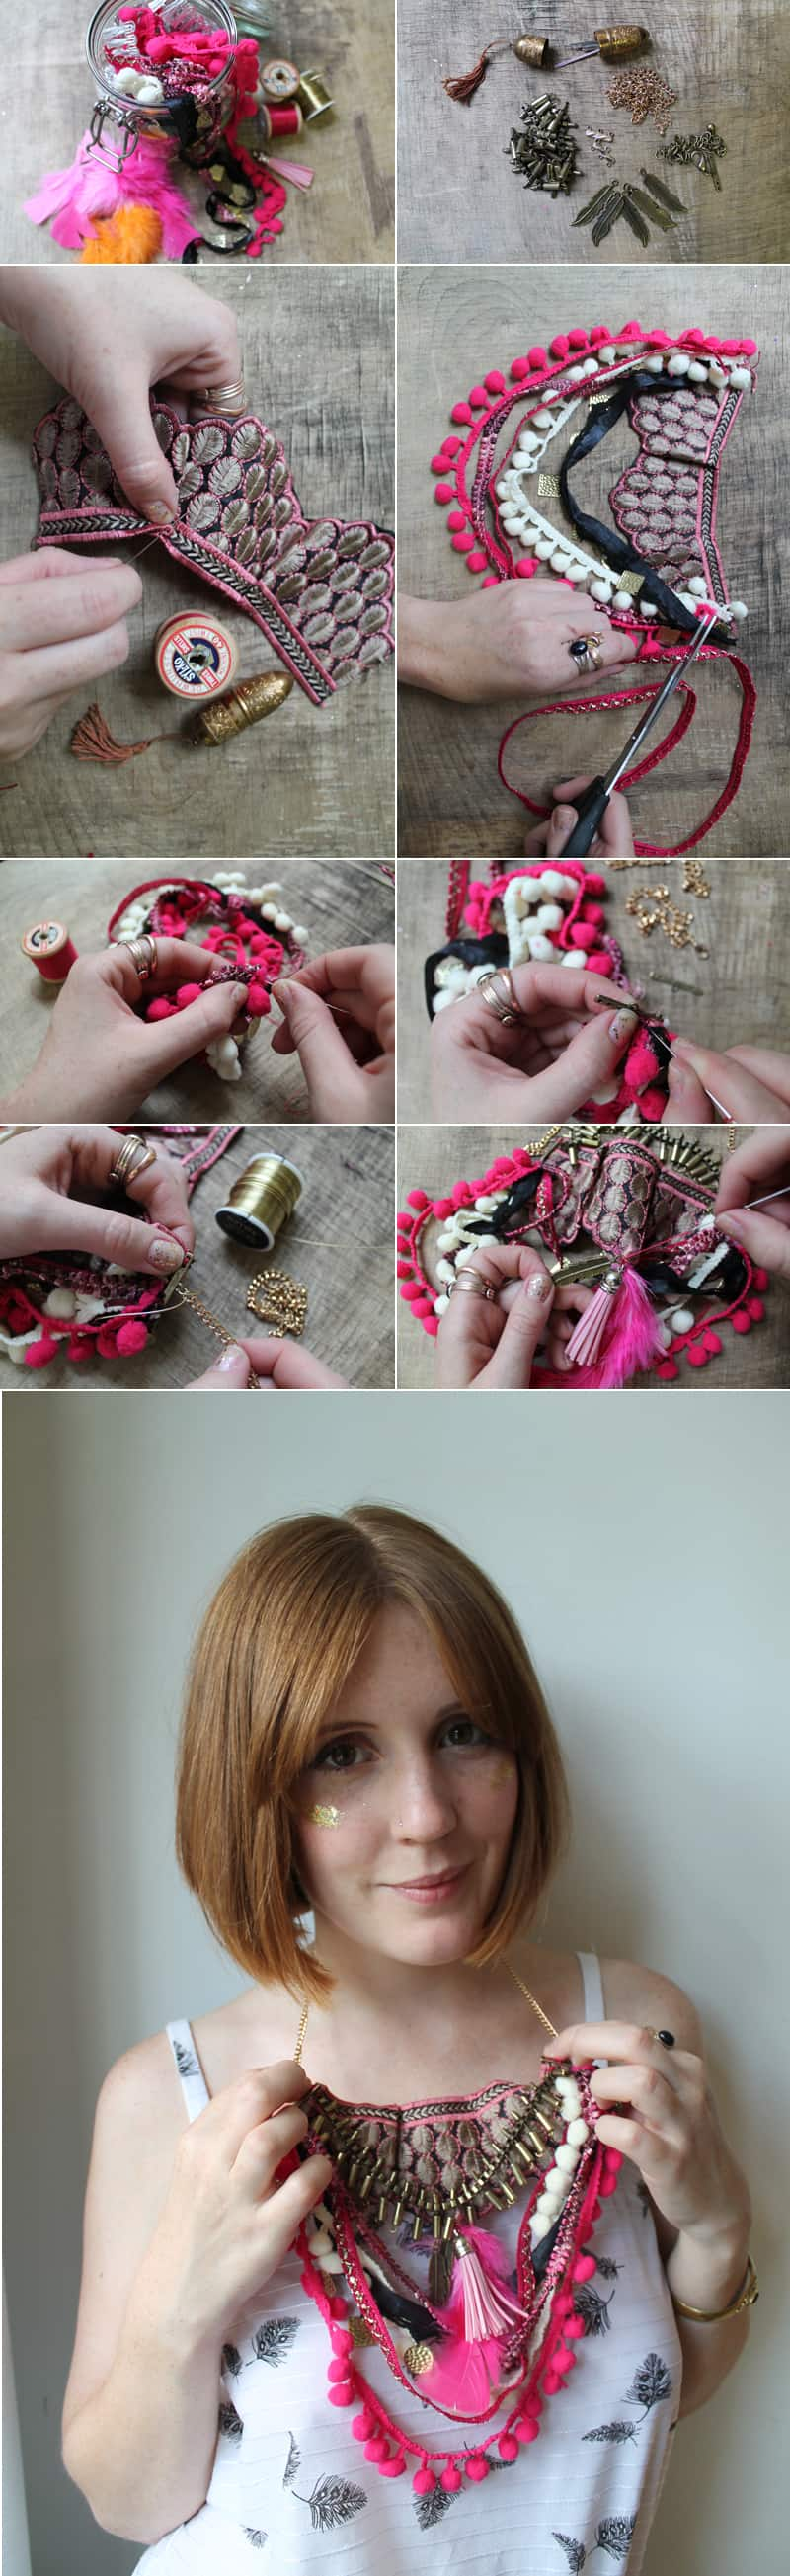 Festival Inspired Necklace DIY Tutorial